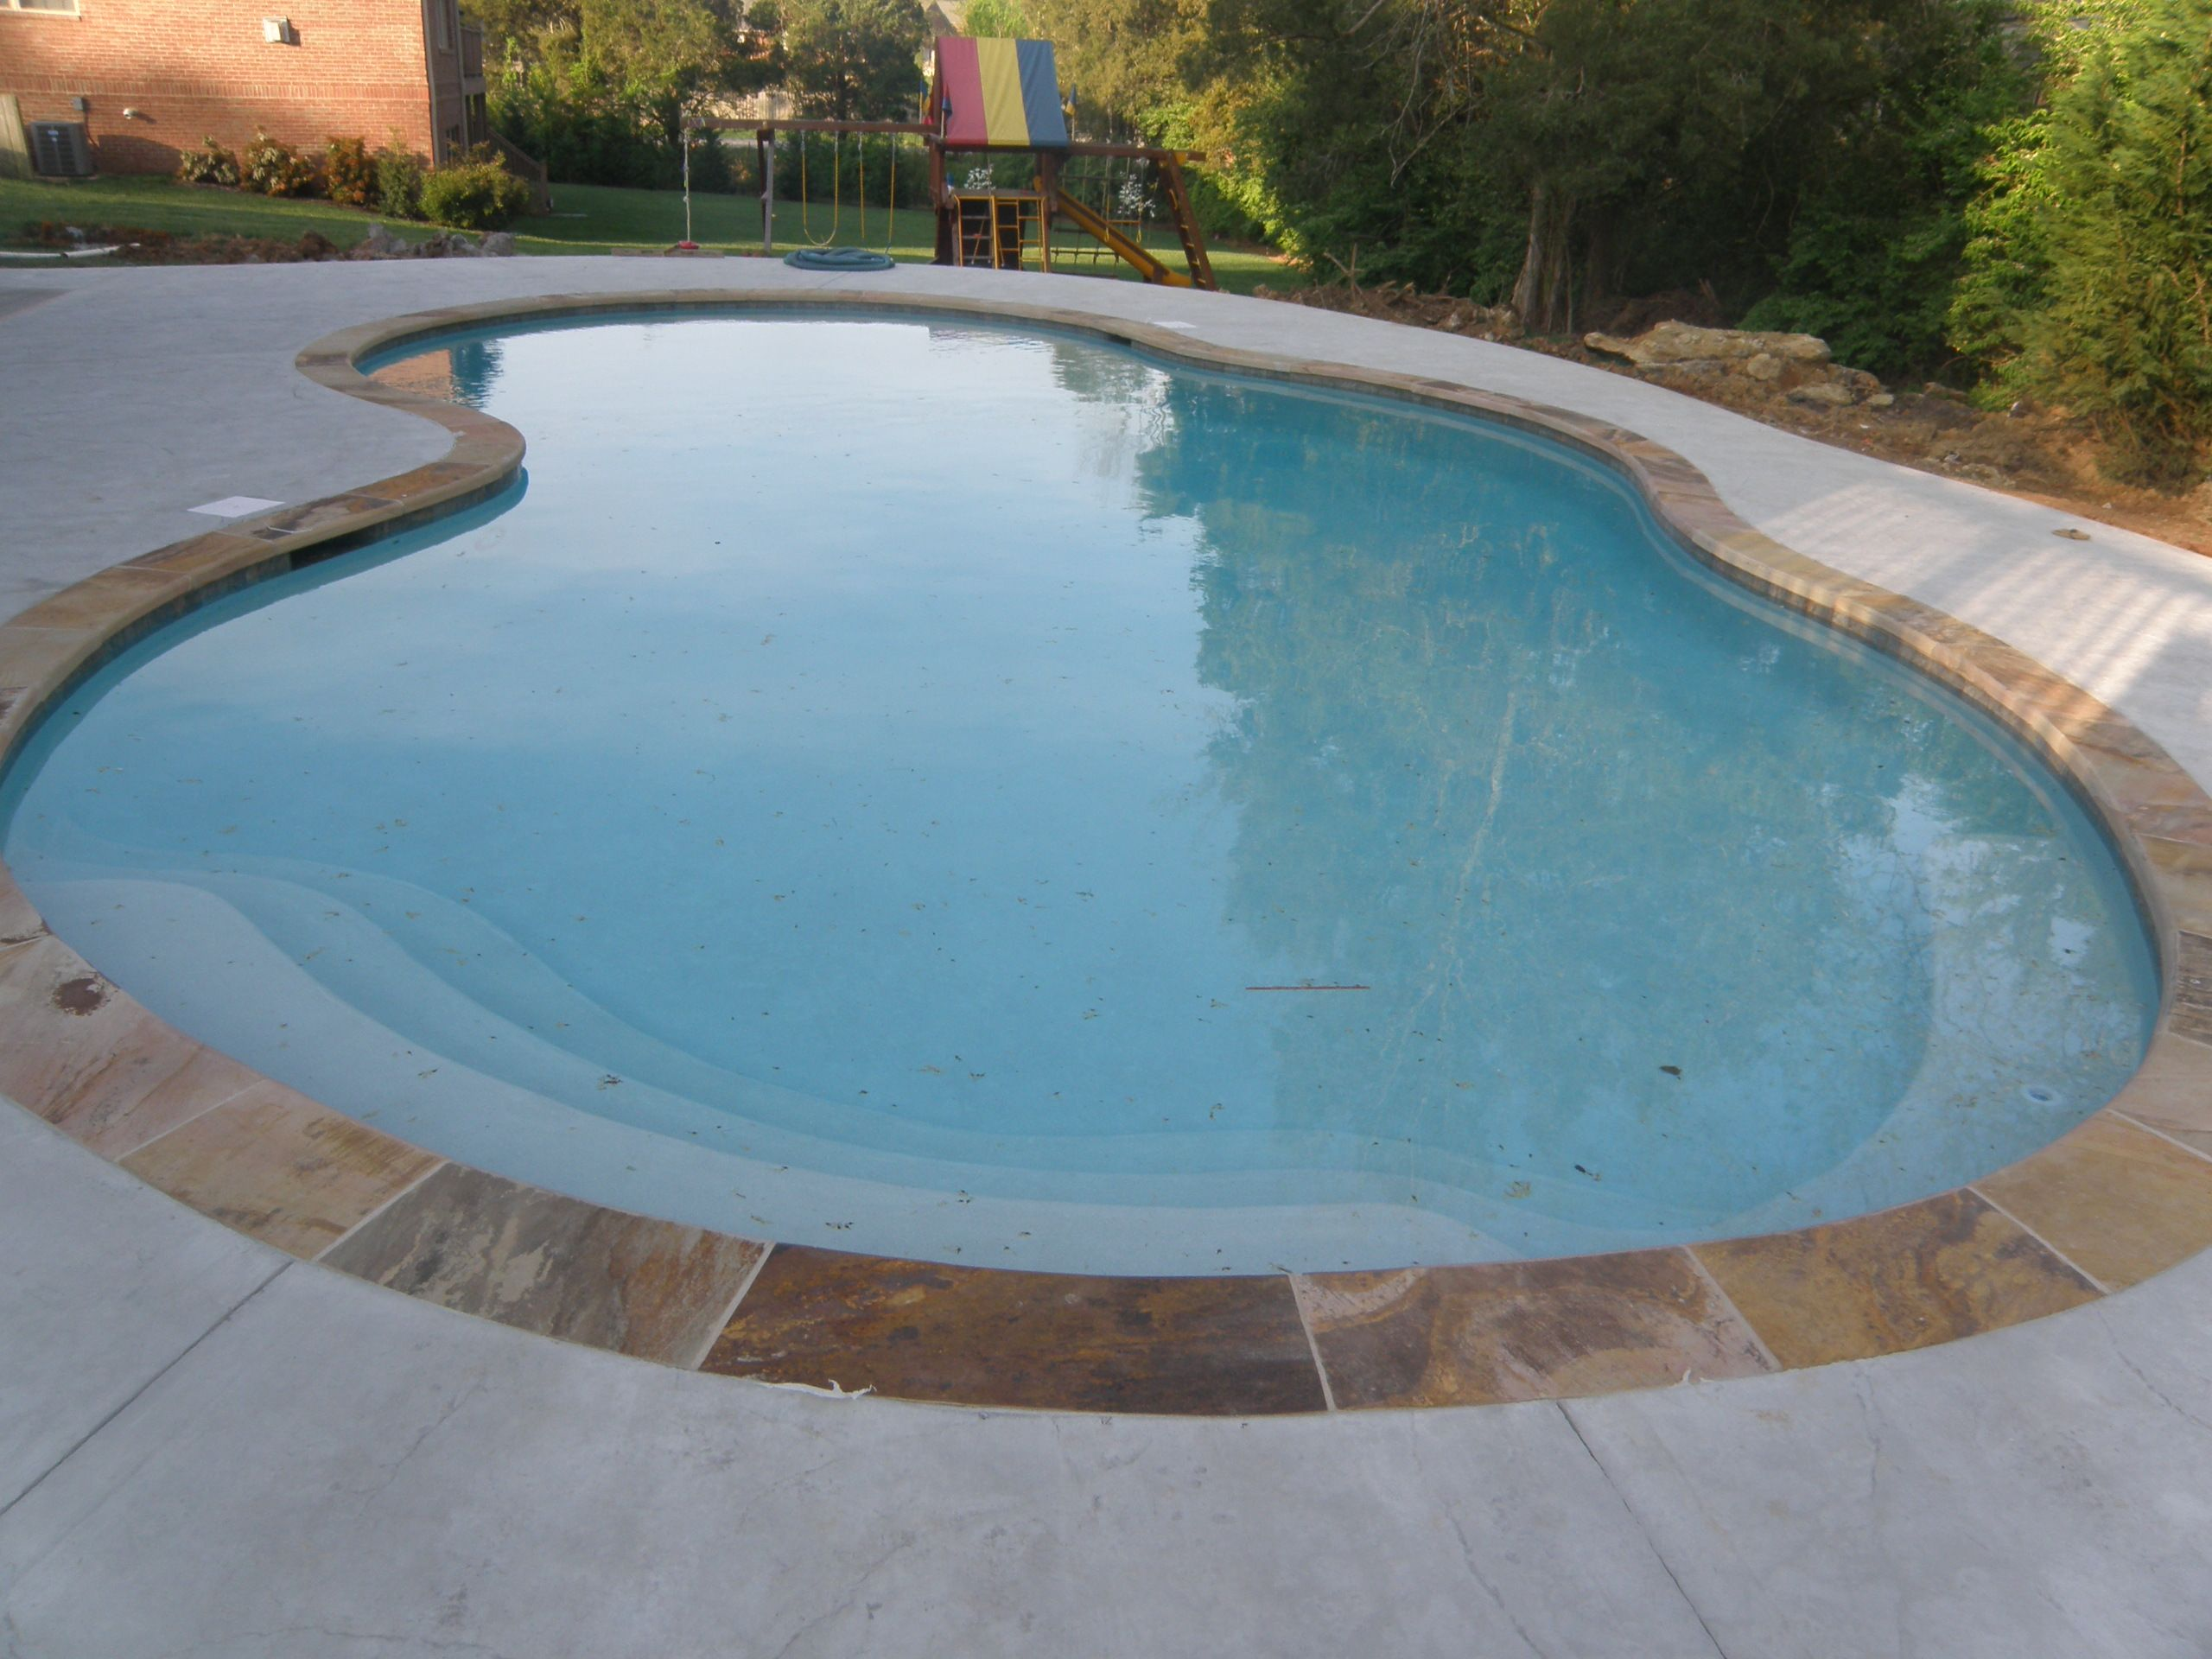 Pool and Hot Tub Coping Gallery - The Rock Yard | Pools | Pinterest ...